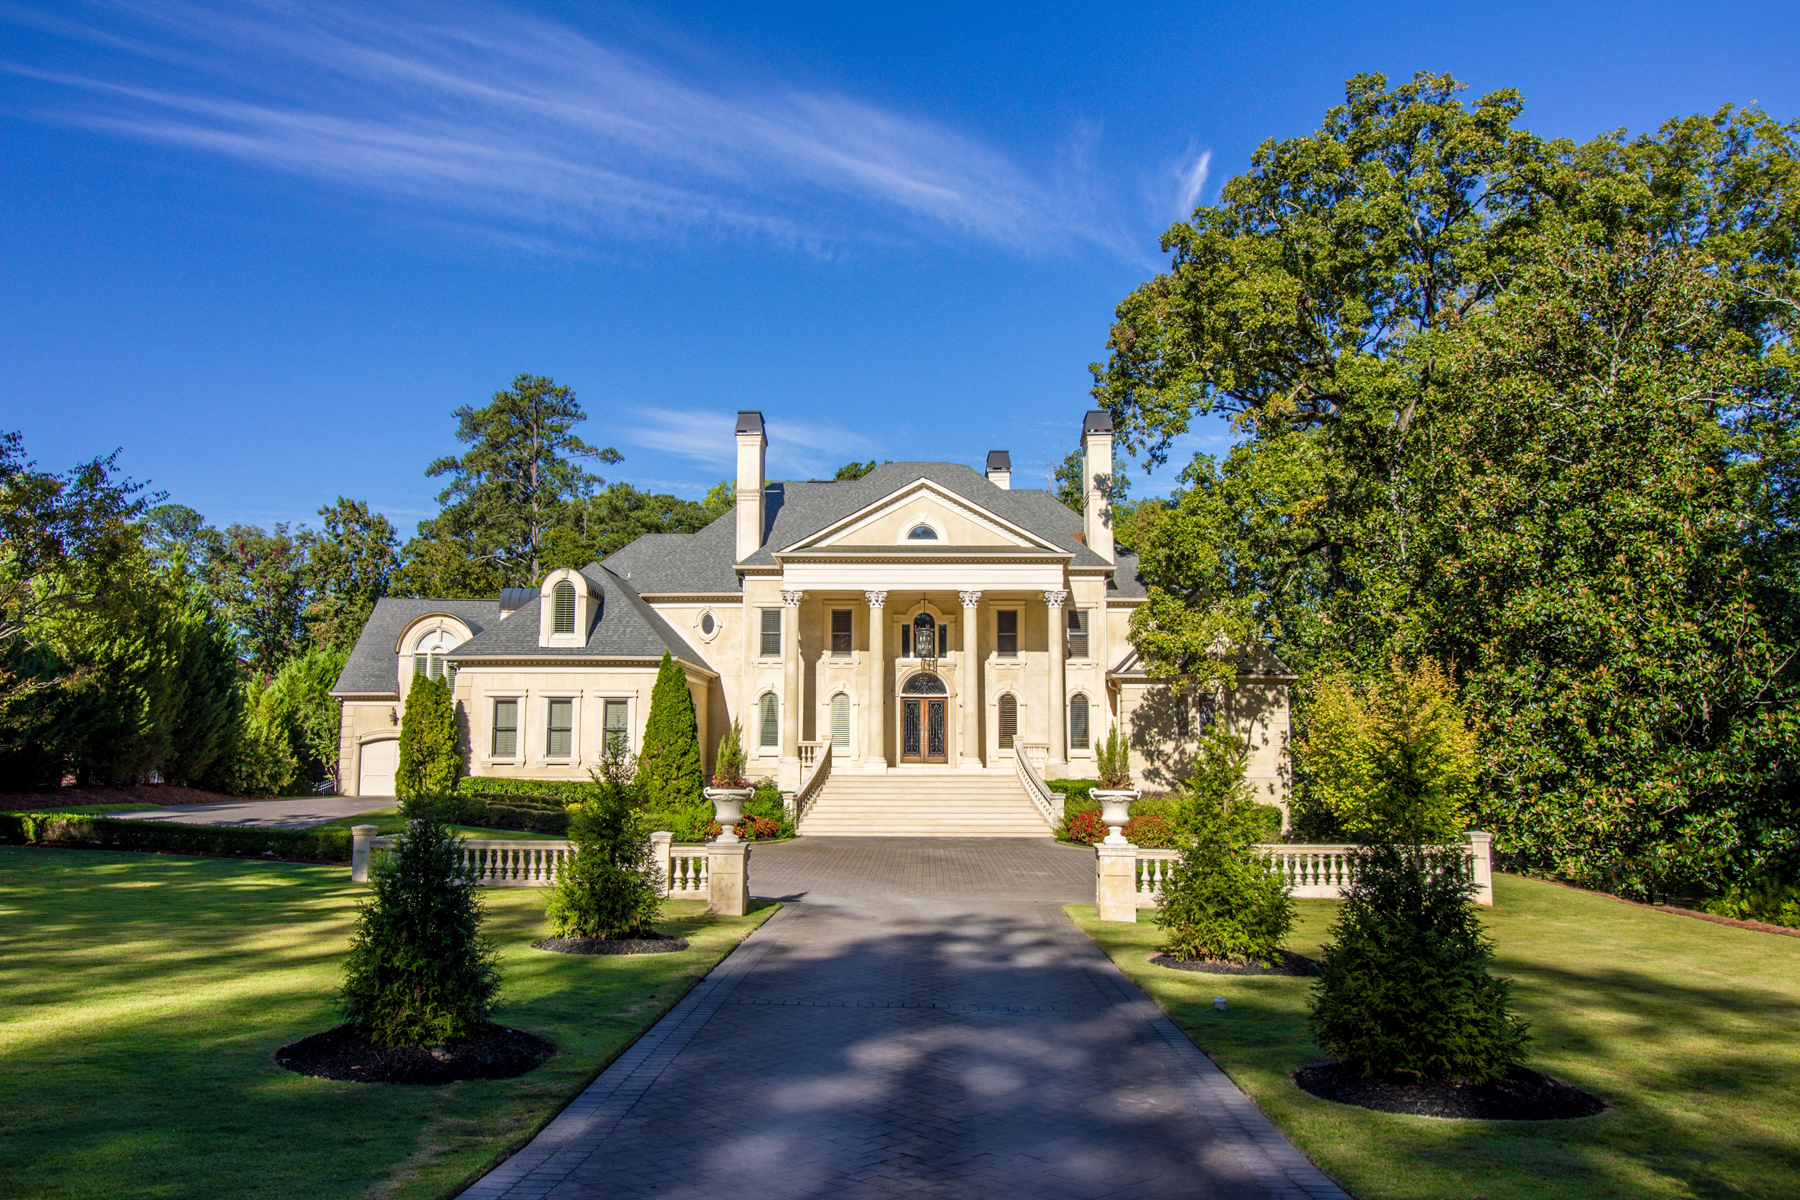 Maison unifamiliale pour l Vente à Incomparable Neoclassical Estate In The Heart Of Buckhead 1495 Mount Paran Road NW Buckhead, Atlanta, Georgia, 30327 États-Unis